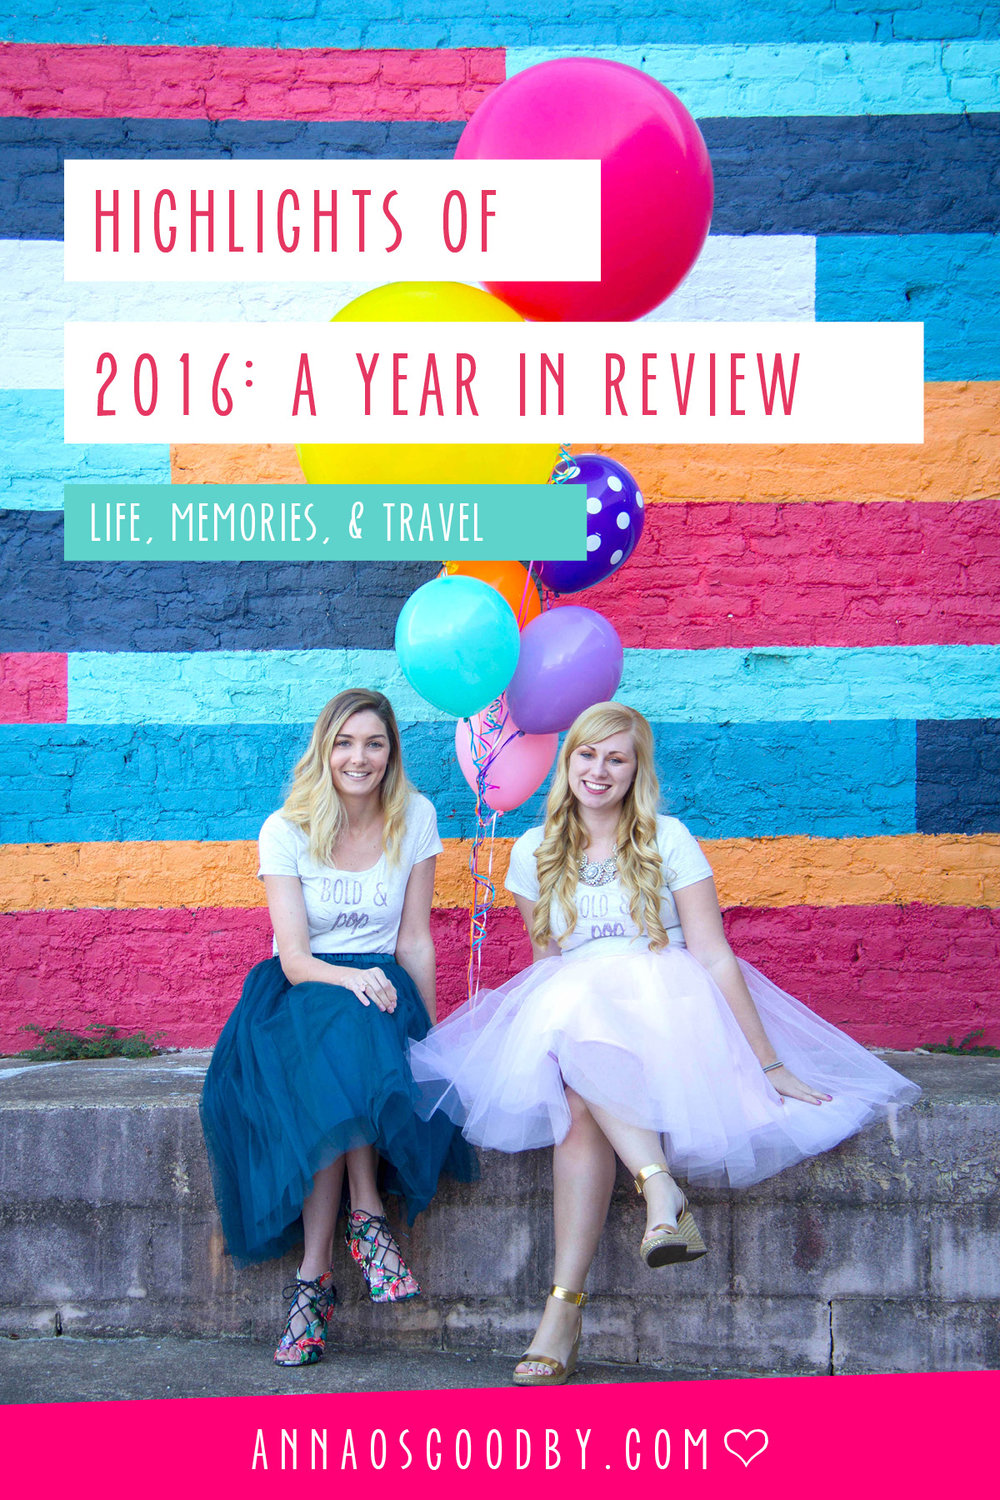 Anna Osgoodby Life + Design: Highlights of 2016 A Year in Review